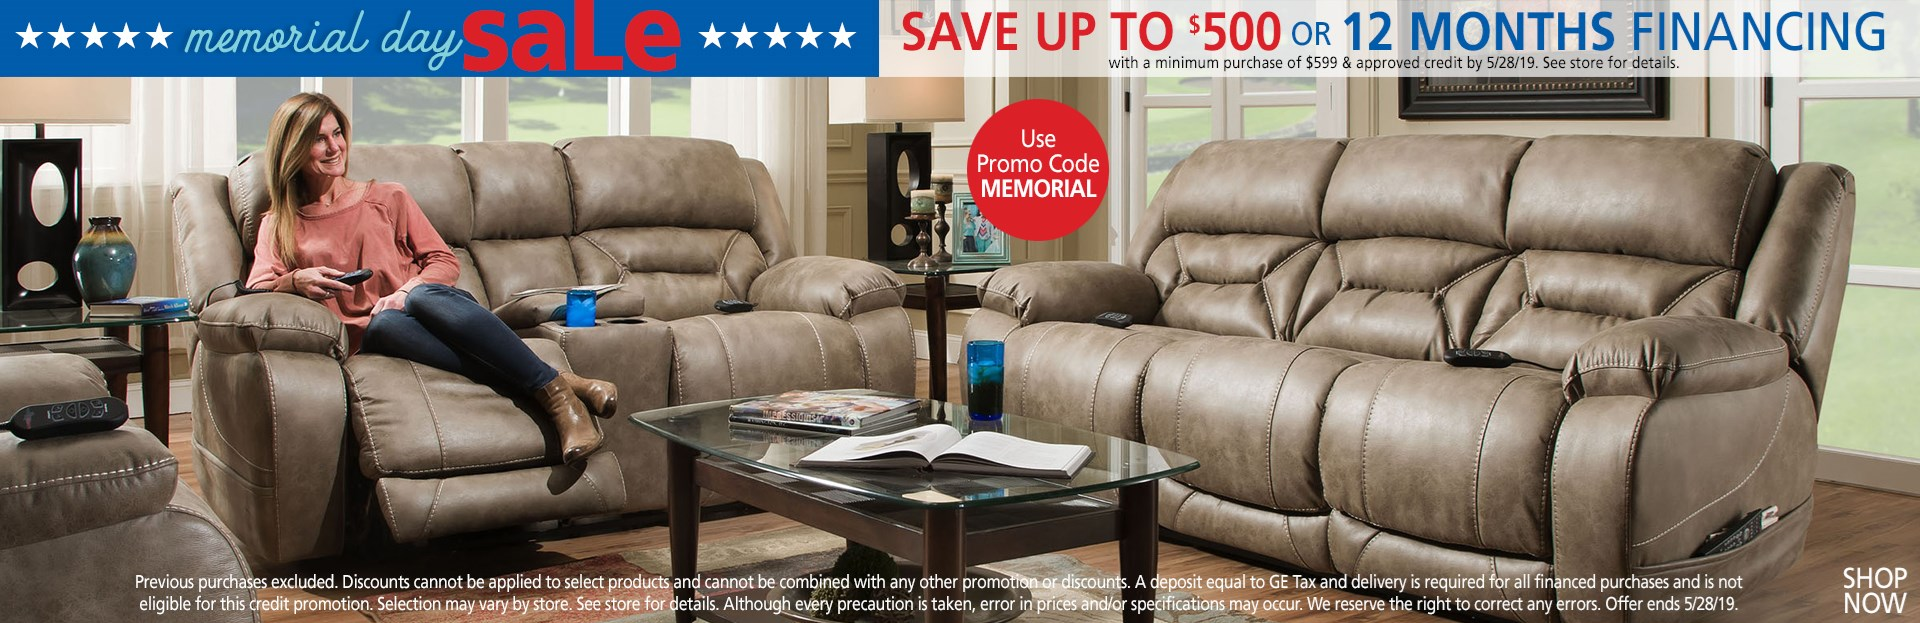 Save up to $500 or ask about 12 months financing; use promo code MEMORIAL. See store for details.